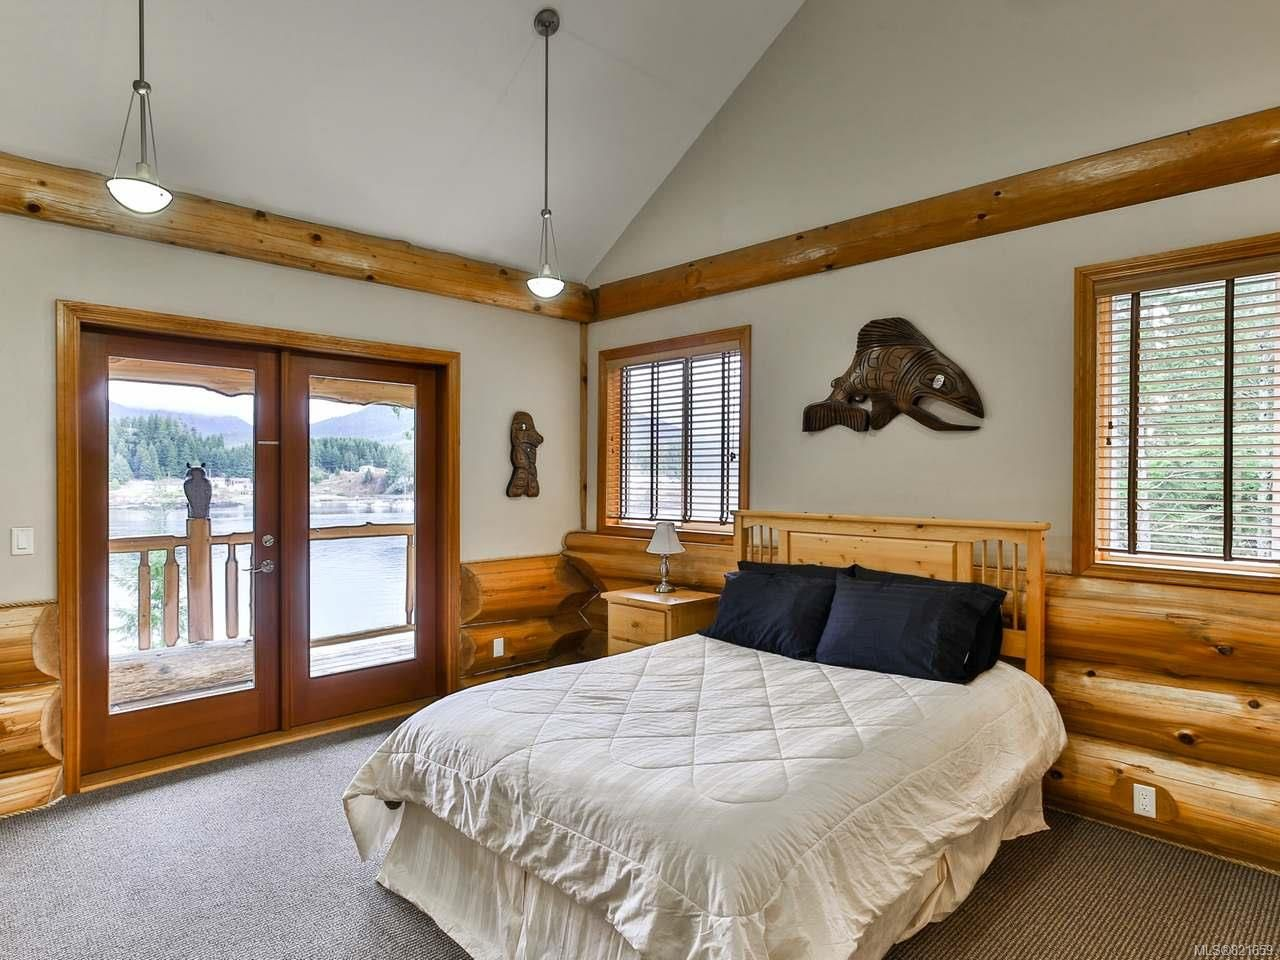 Photo 23: Photos: 1049 Helen Rd in UCLUELET: PA Ucluelet House for sale (Port Alberni)  : MLS®# 821659